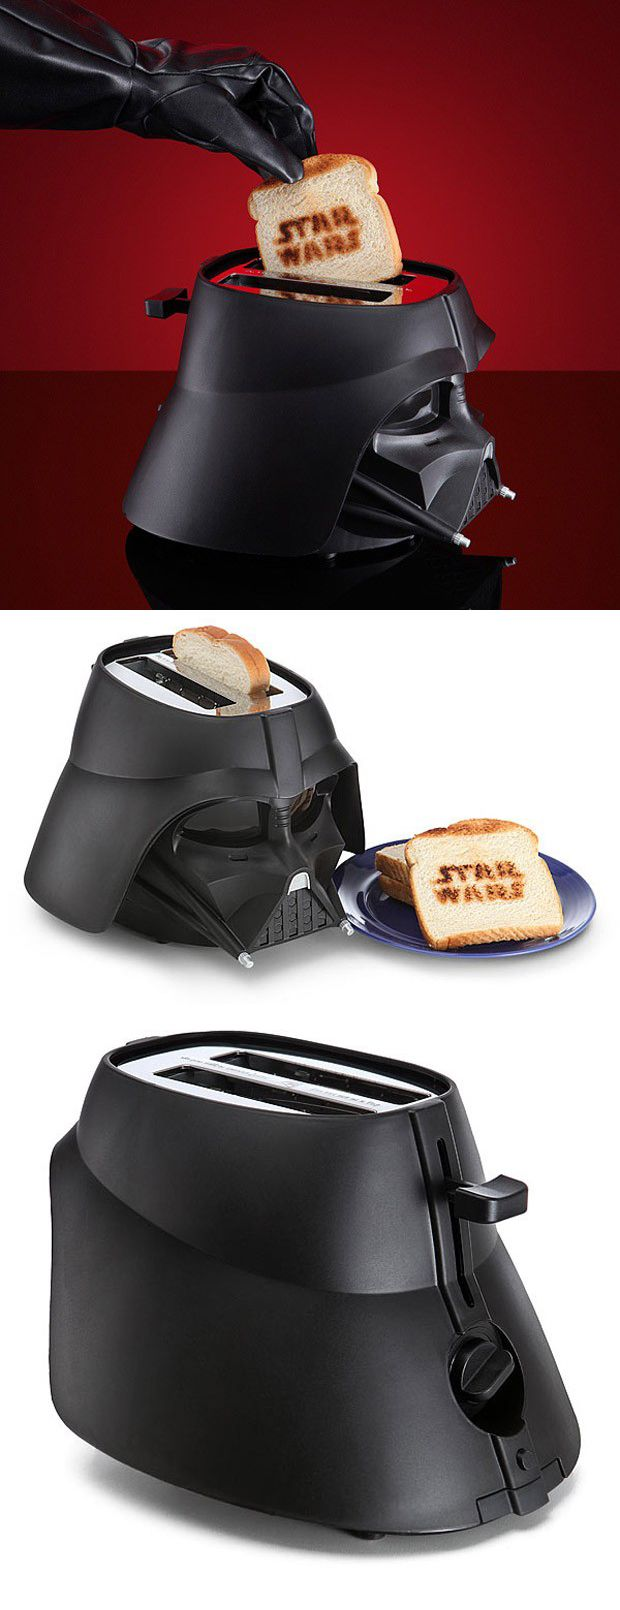 This.is.fantastic.  http://technabob.com/blog/2015/01/22/darth-vader-toaster/#sthash.K9CYgnFl.dpuf